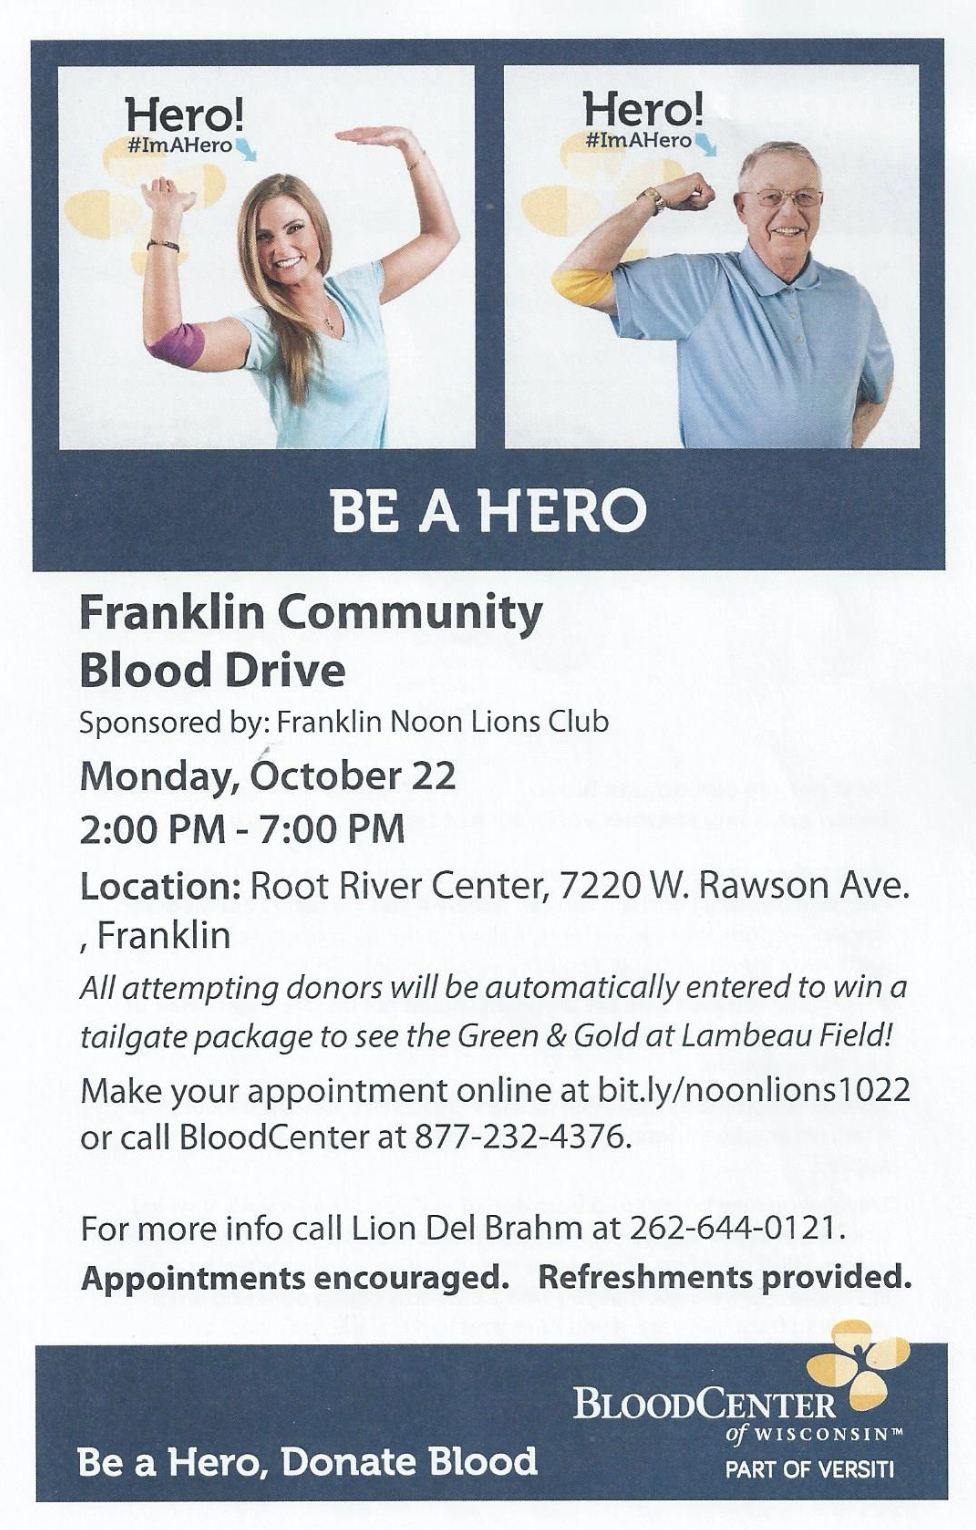 Franklin Community Blood Drive